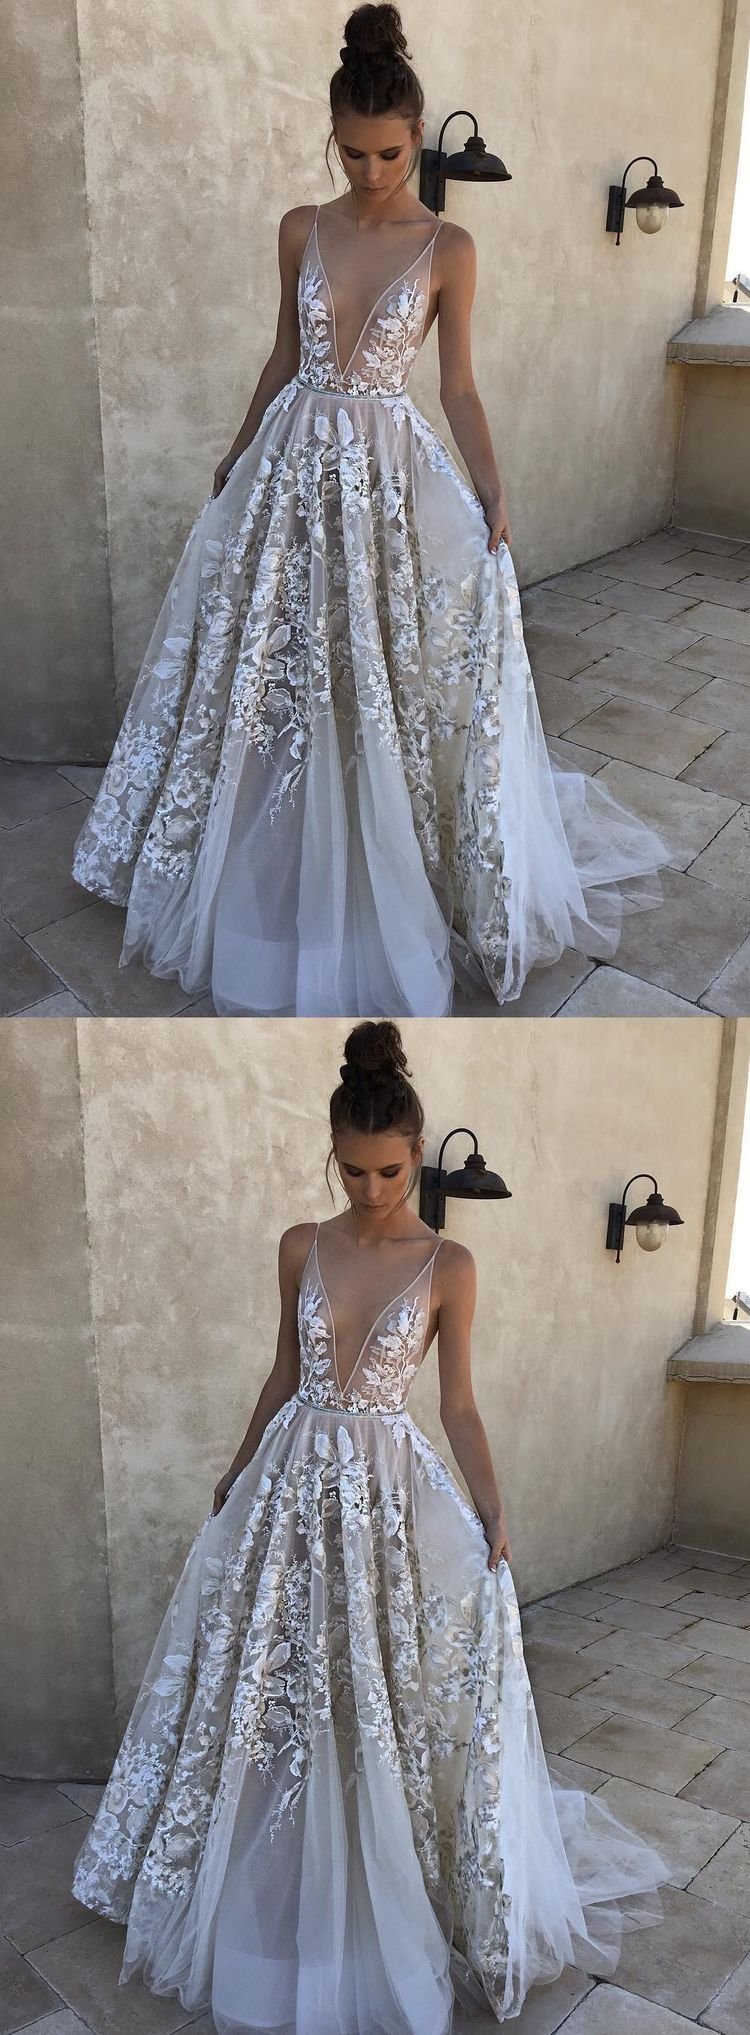 Pin by j on gowns in pinterest prom dresses dresses and prom